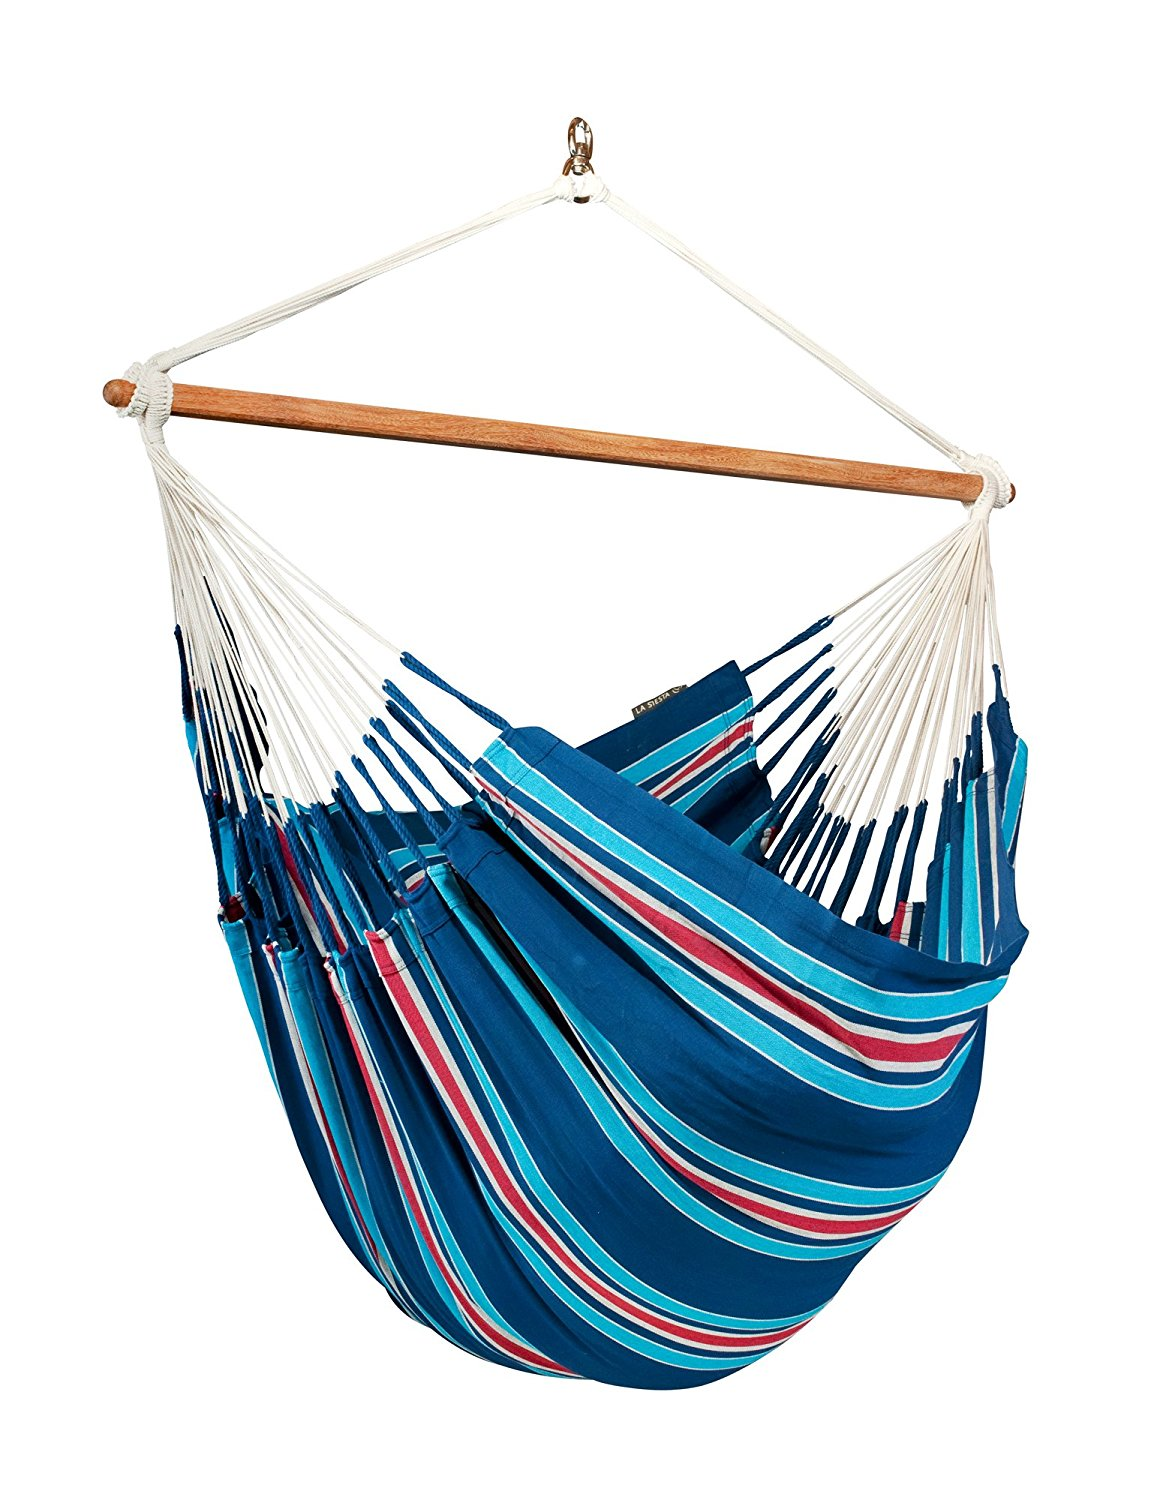 Columbian Hammock by La Siesta Blueberry